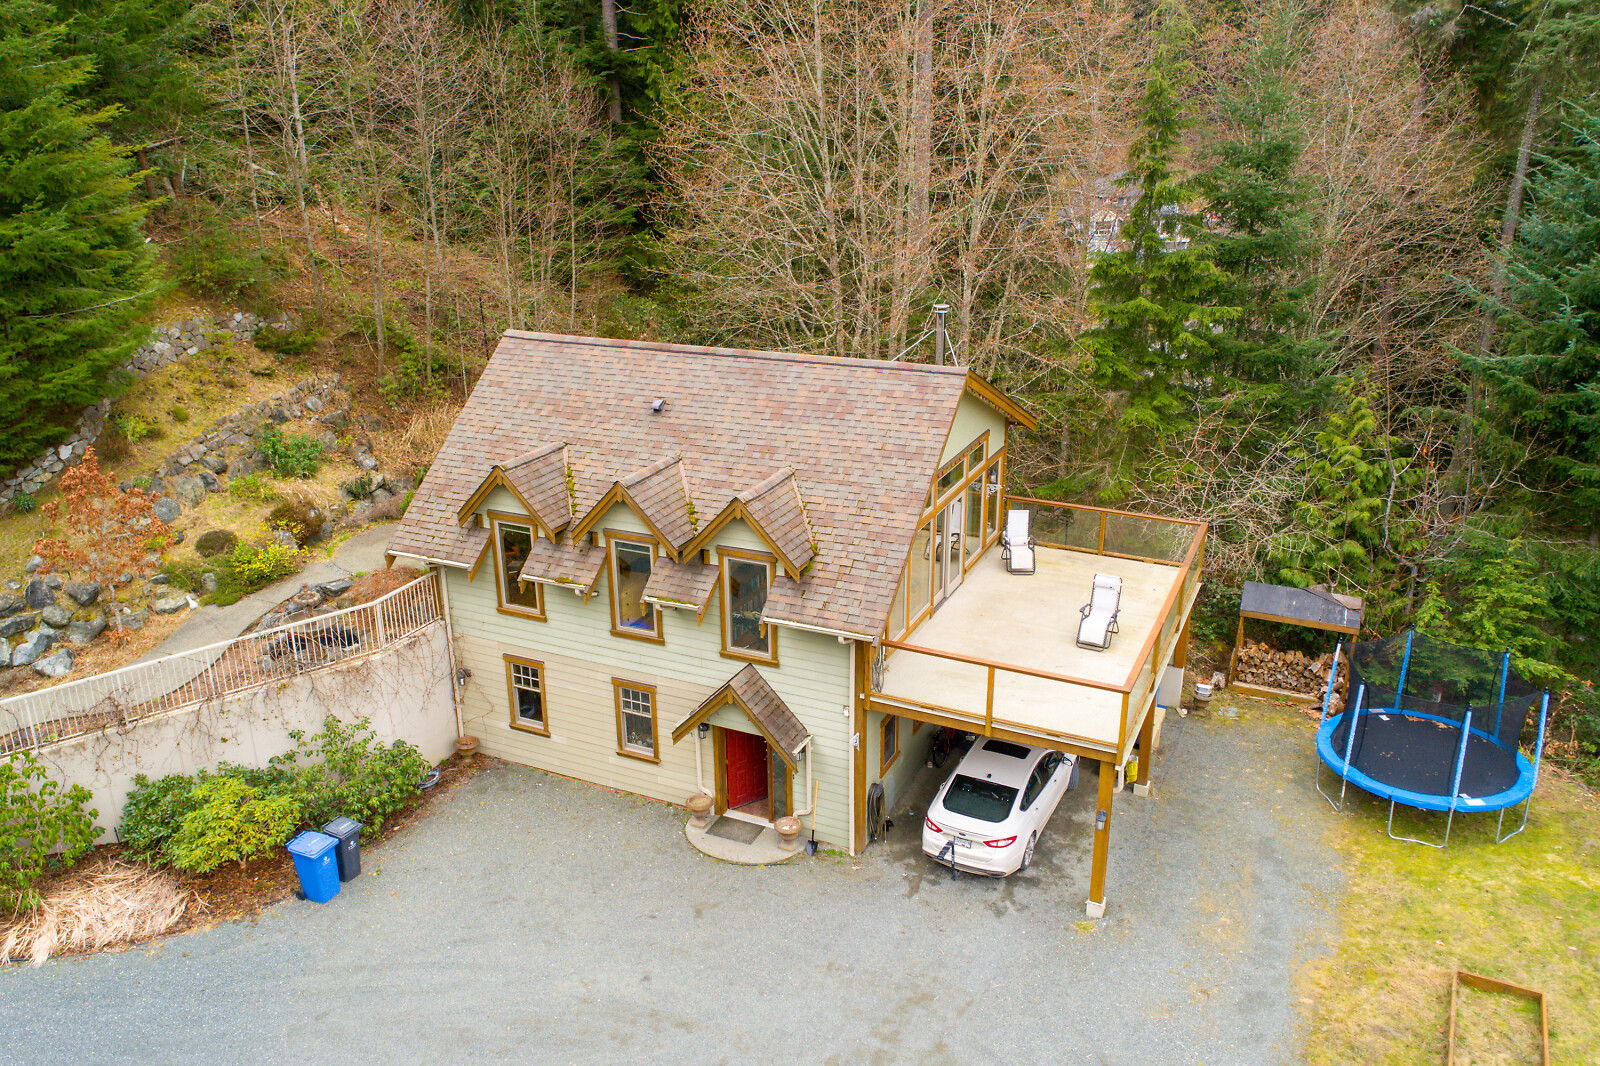 4362 Brentview Dr, cowichan bay, British Columbia